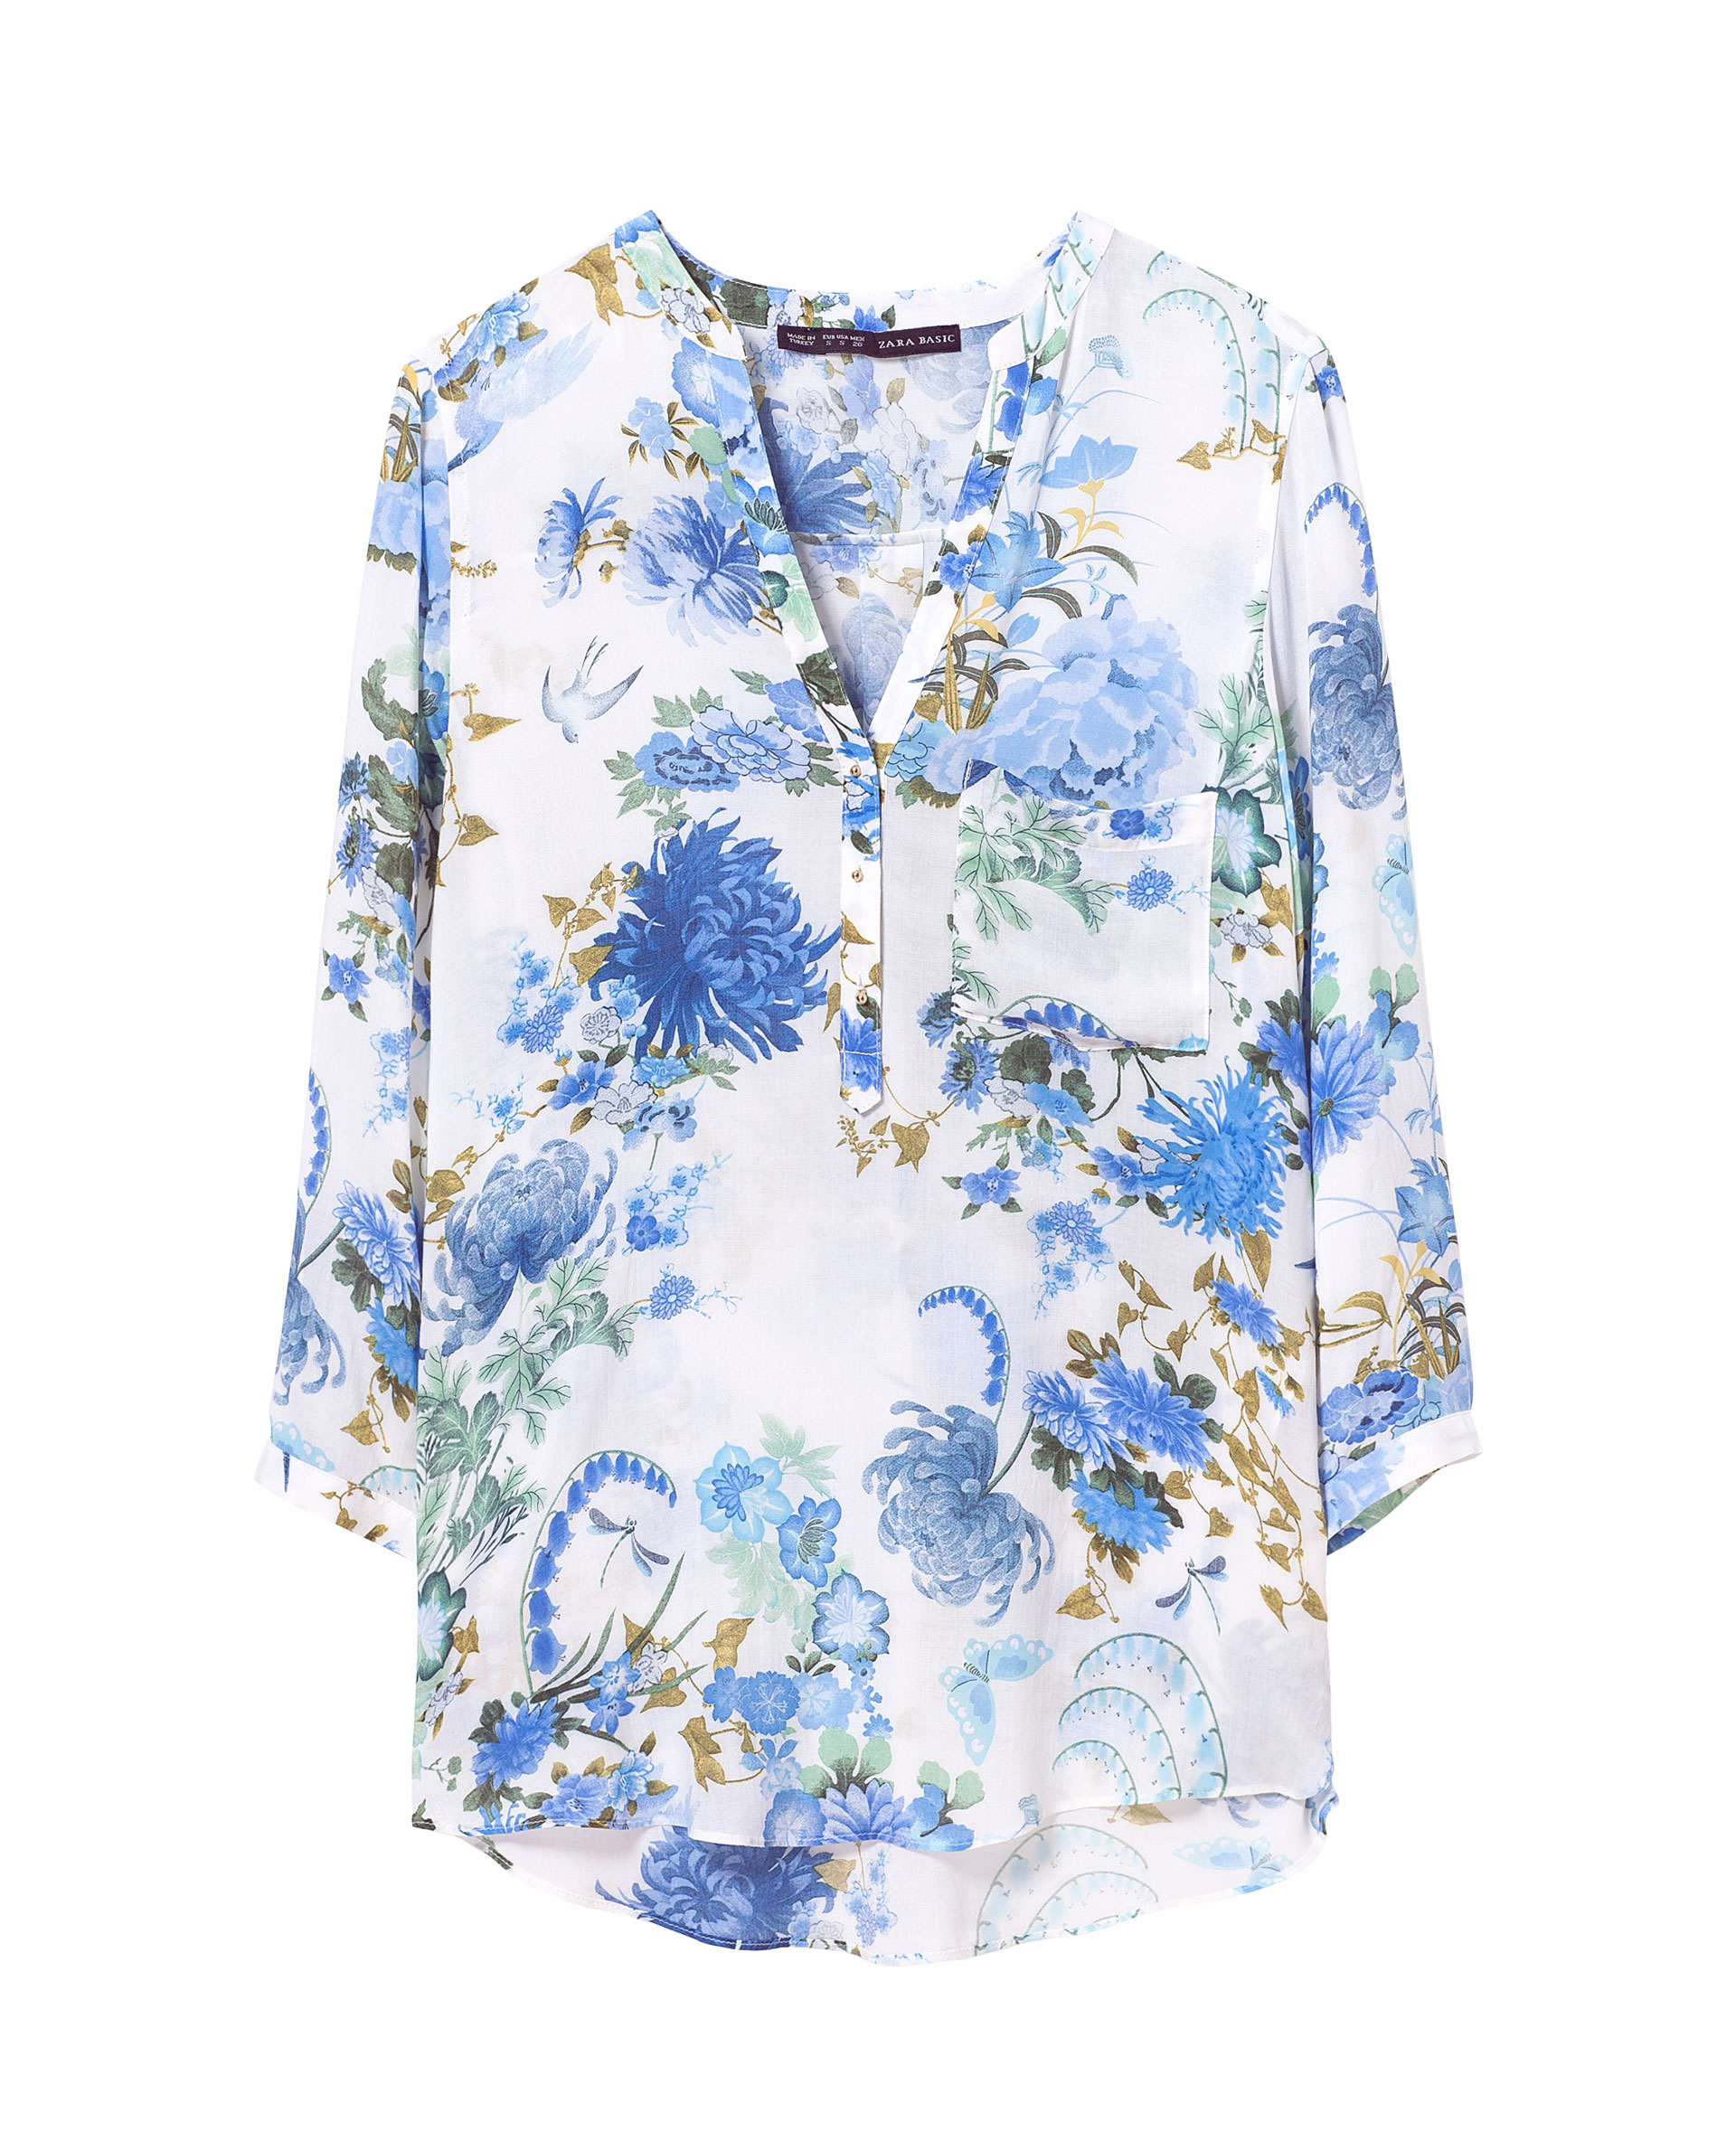 Zara Light Blue Floral Printed Linen Blouse Top Size M, L. AU $ From United Kingdom. AU $ postage. ZARA BNWT SHIRT BLOUSE TOP SIZE LARGE CHECK LADIES GIRLS RRP £ A SUPER LADIES BNWT ZARA CHECK BLOUSE SHIRT TOP WITH LAPEL COLLAR AND LONG SLEEVES. SIZE LARGE SO WILL FIT SIZE